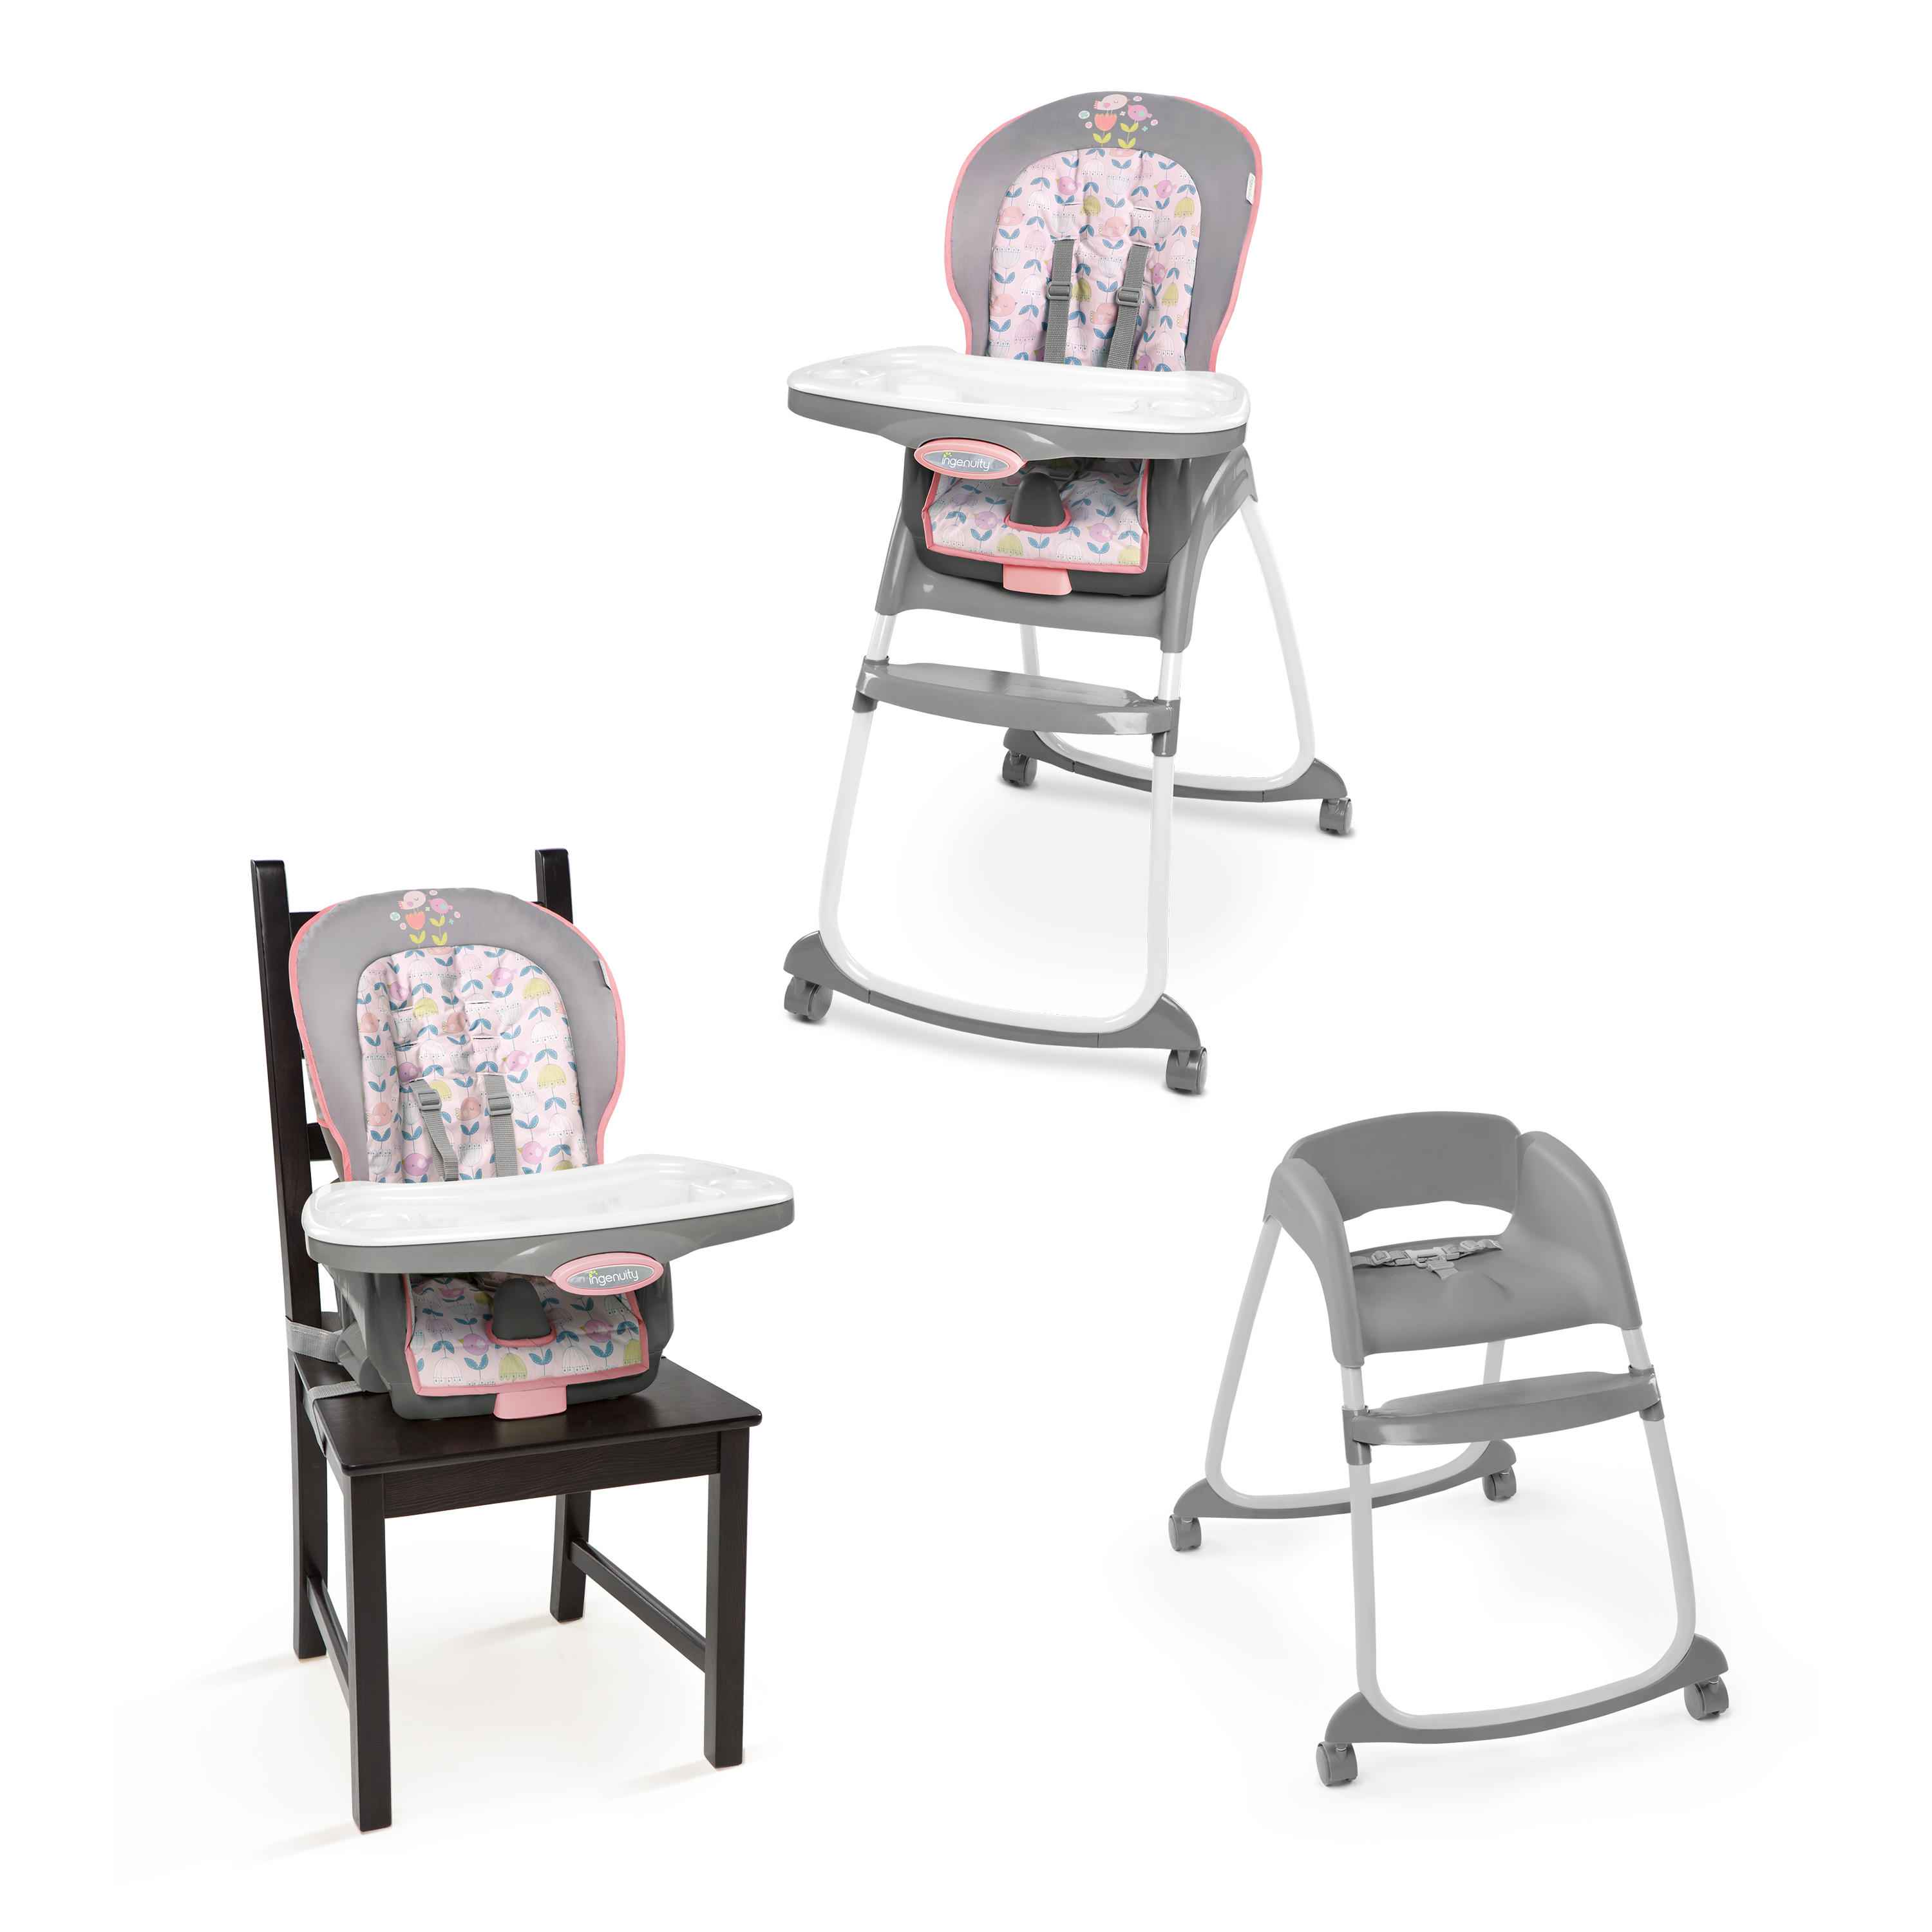 ingenuity high chair 3 in 1 cover helps you stand up trio ansley walmart com